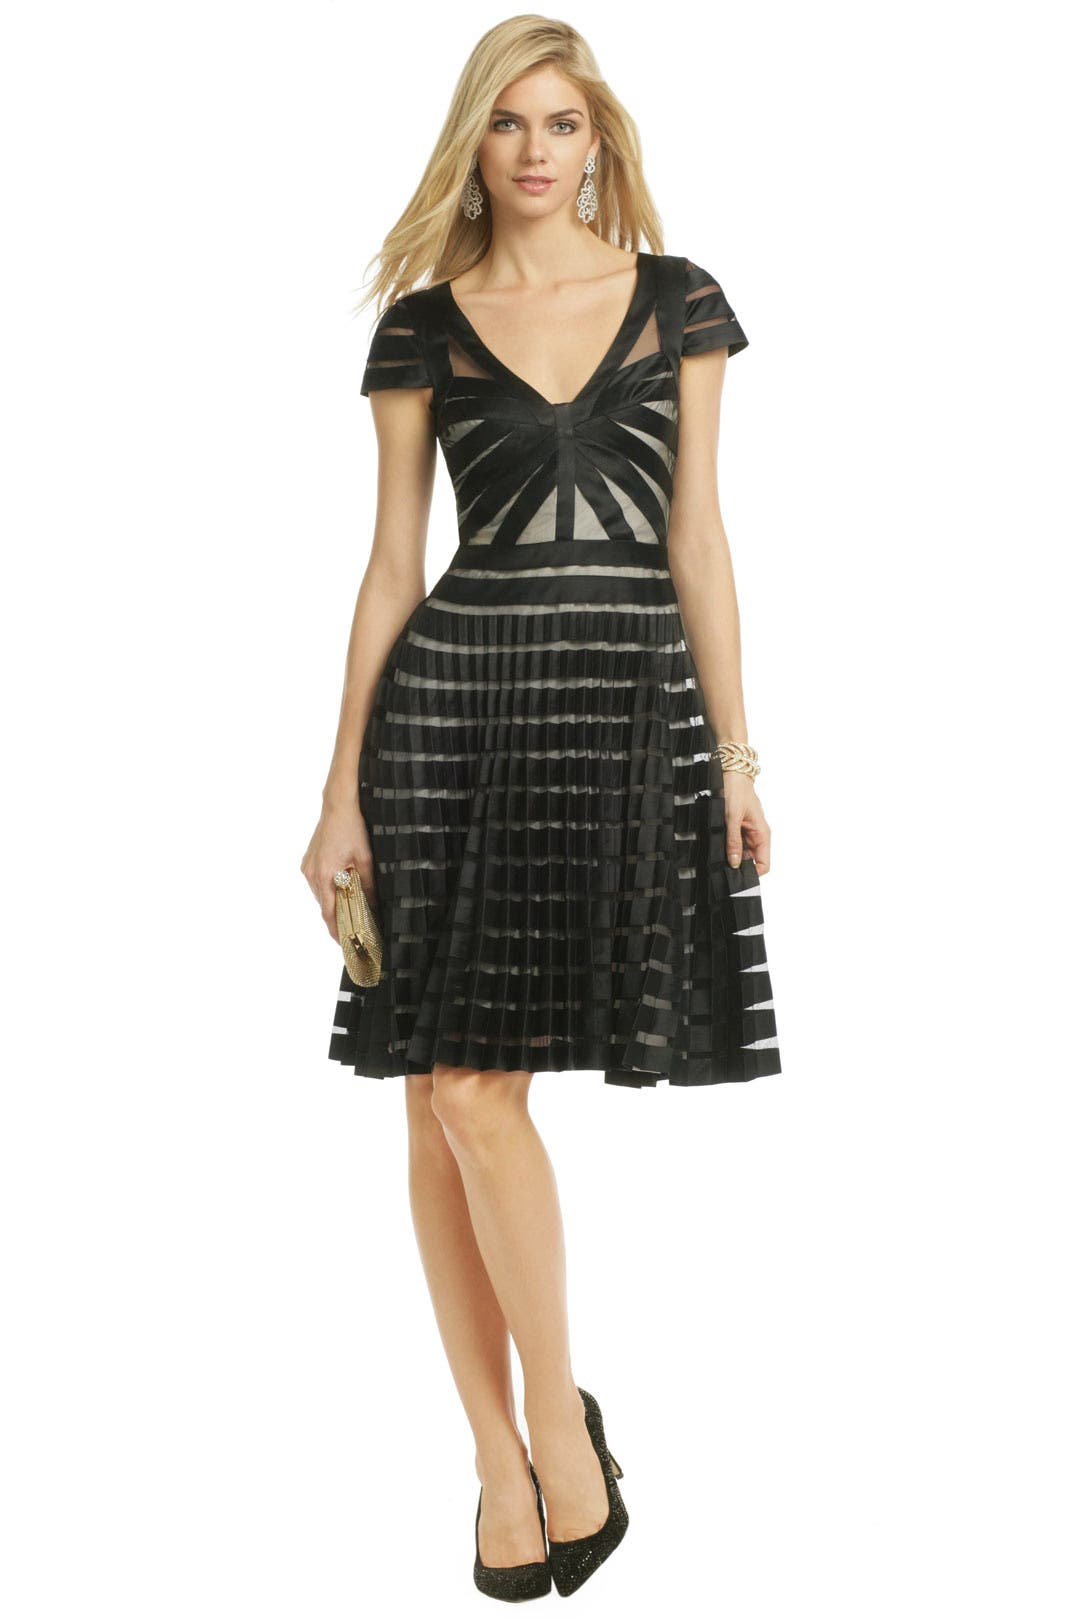 fb378a52ab013 So Fan-tastic Dress by Temperley London for $352 | Rent the Runway